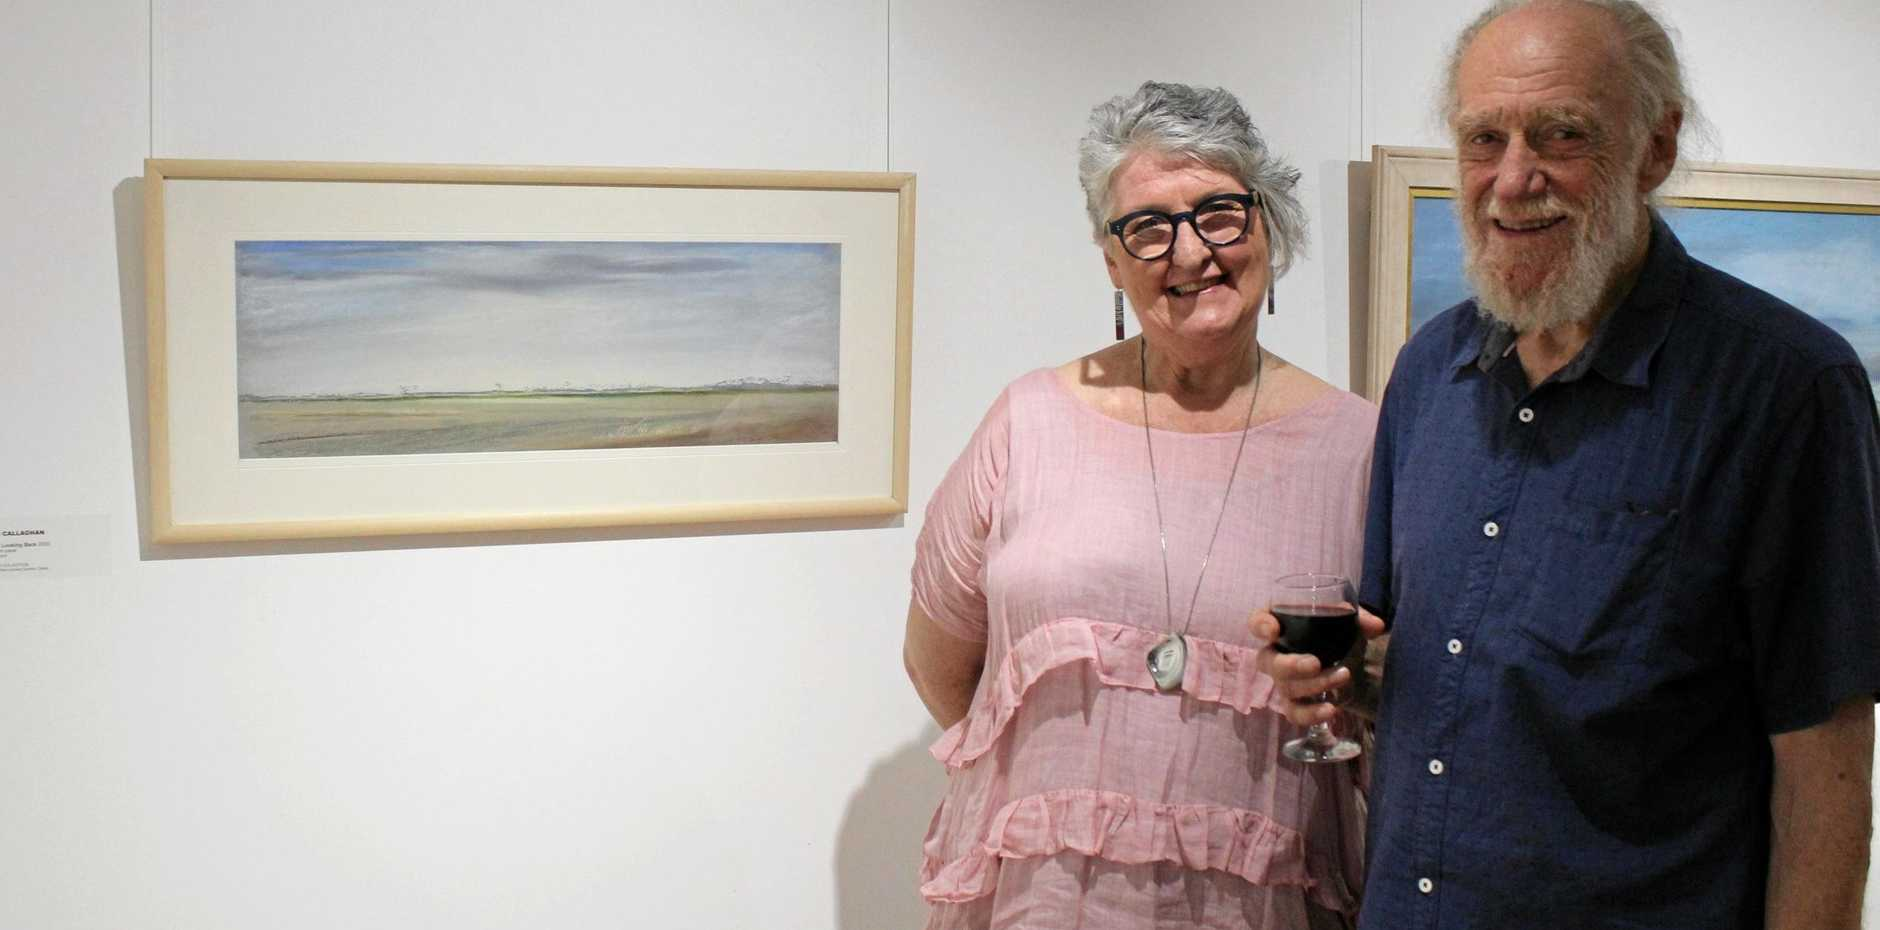 ON SHOW: Trish Callaghan and Mervyn Moriarty with one of Trish's artworks in the Response section of the Colour and Response exhibition at Gallery 107.